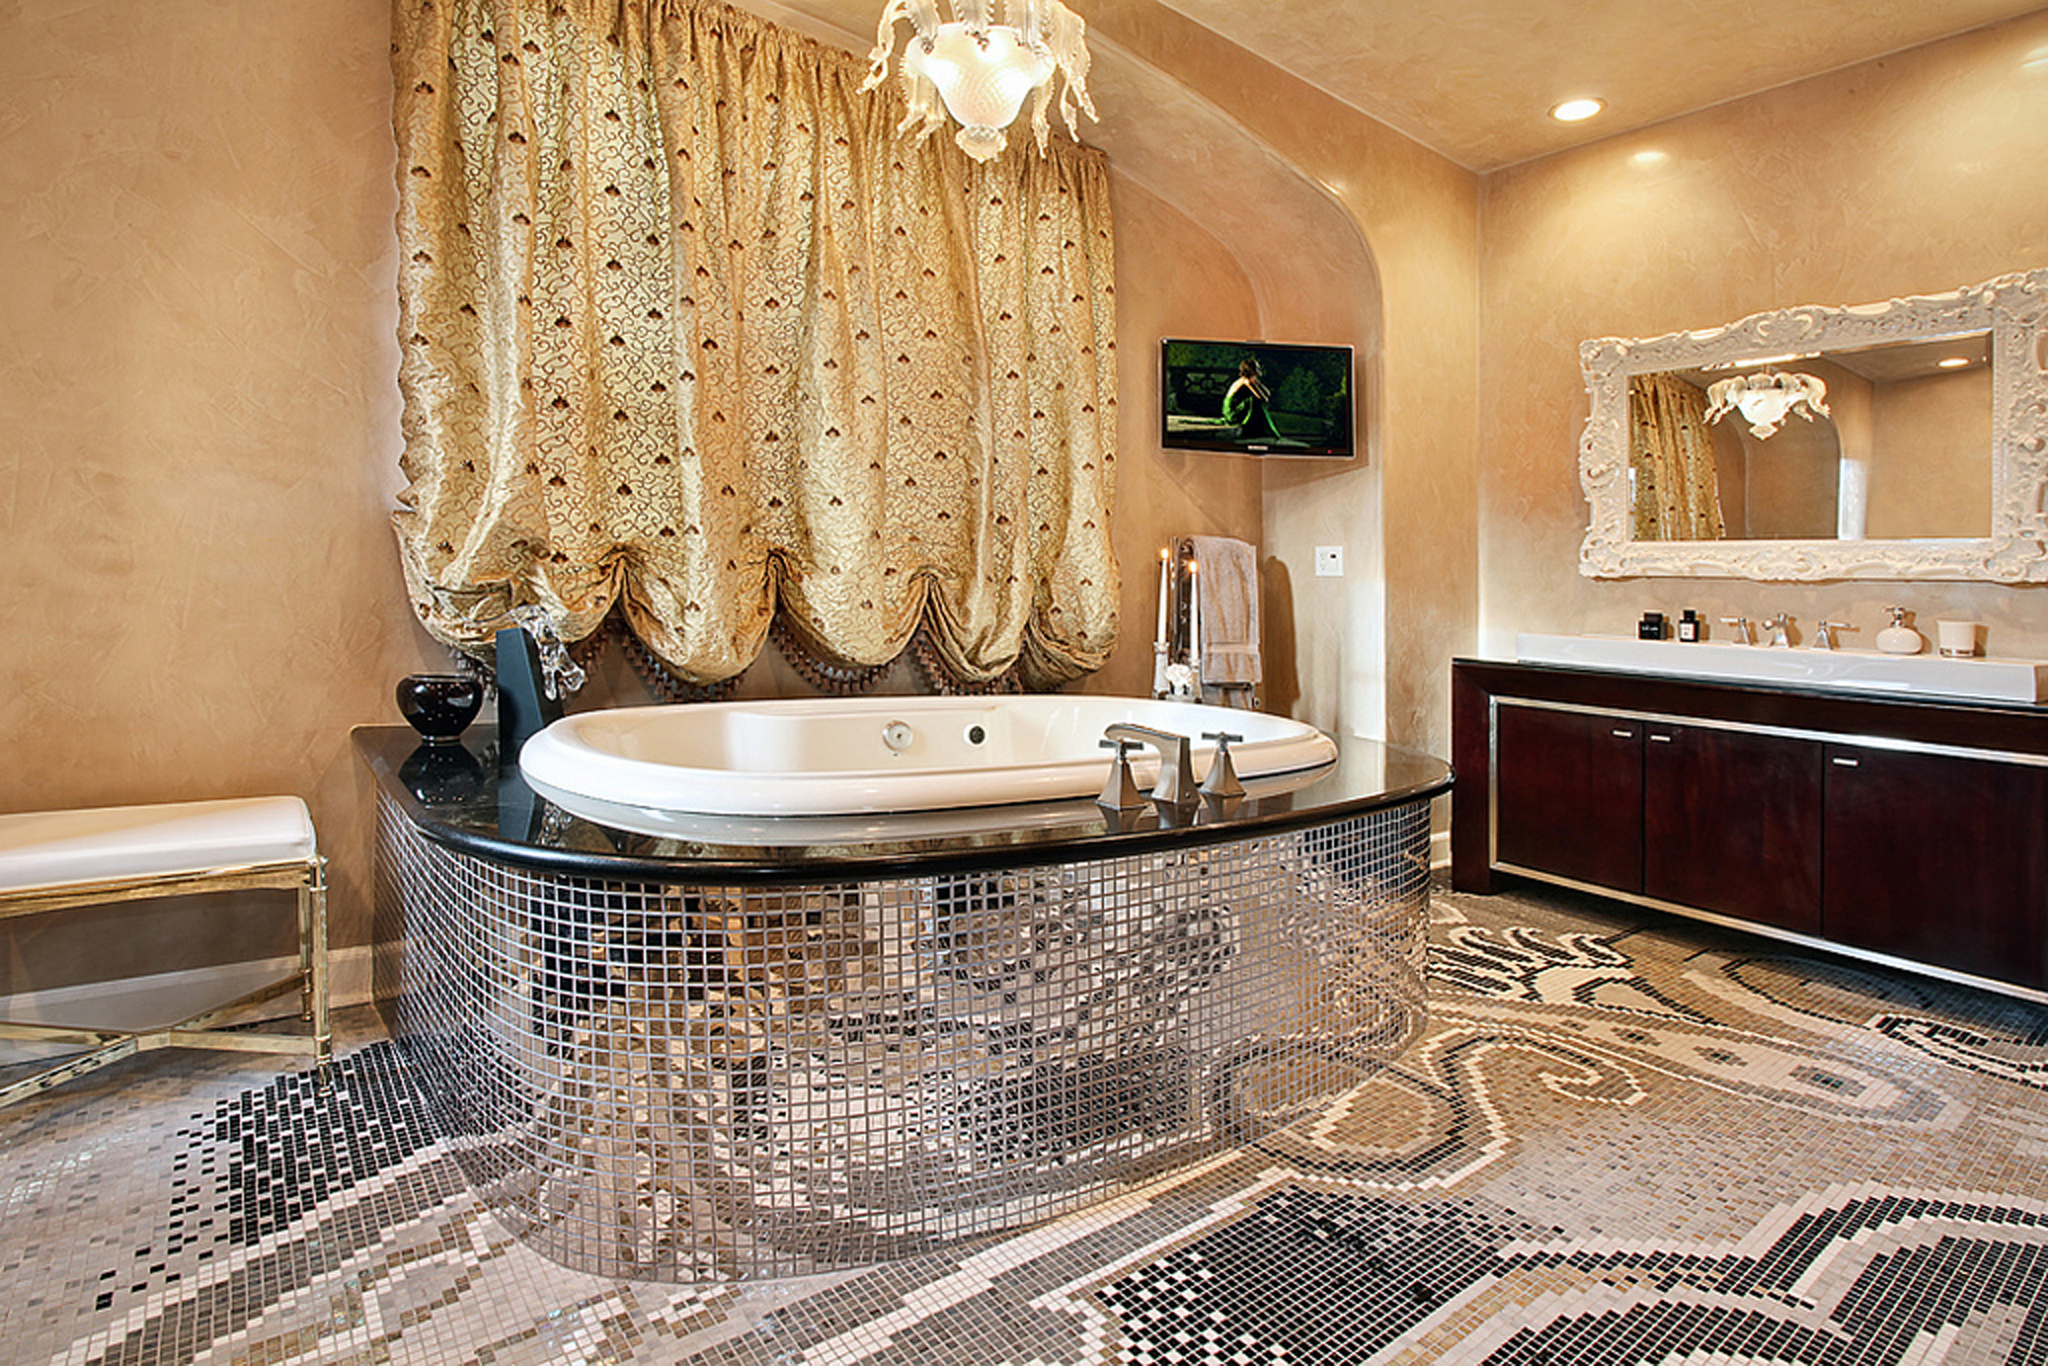 Rancho santa fe custom luxury interiors rancho santa fe for Custom home designer online